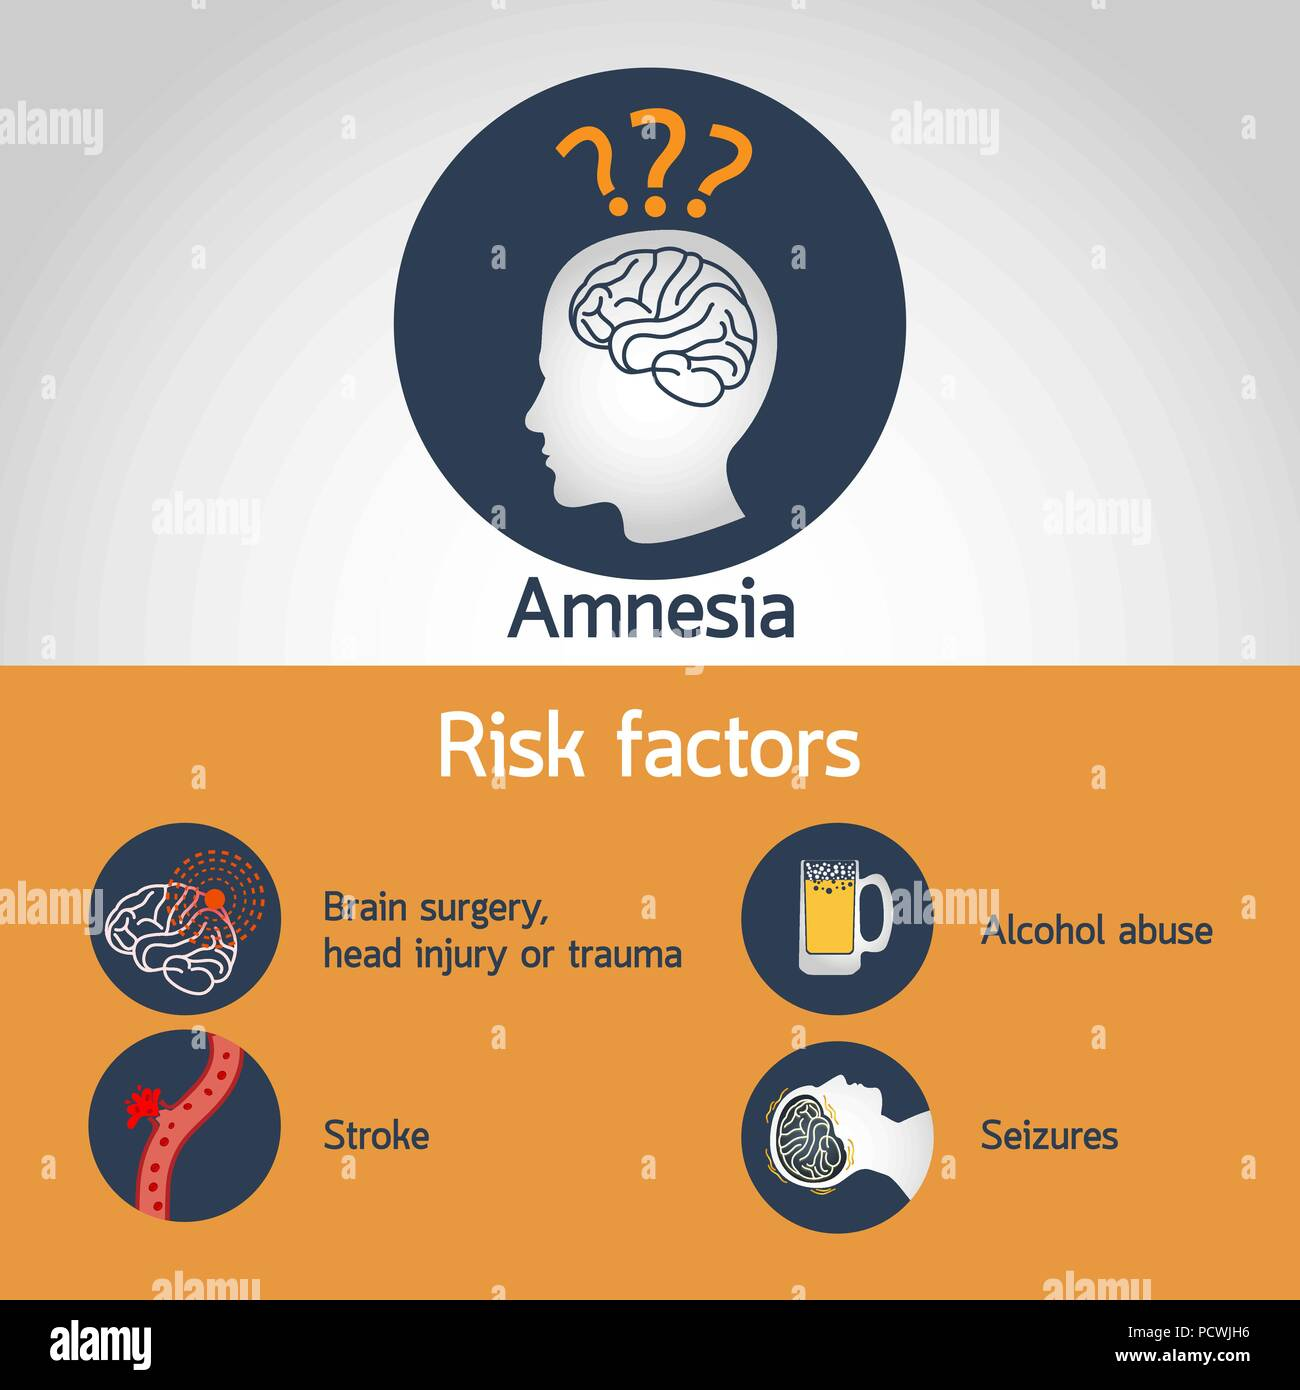 Amnesia Risk factors medical vector illustrations infographic - Stock Image